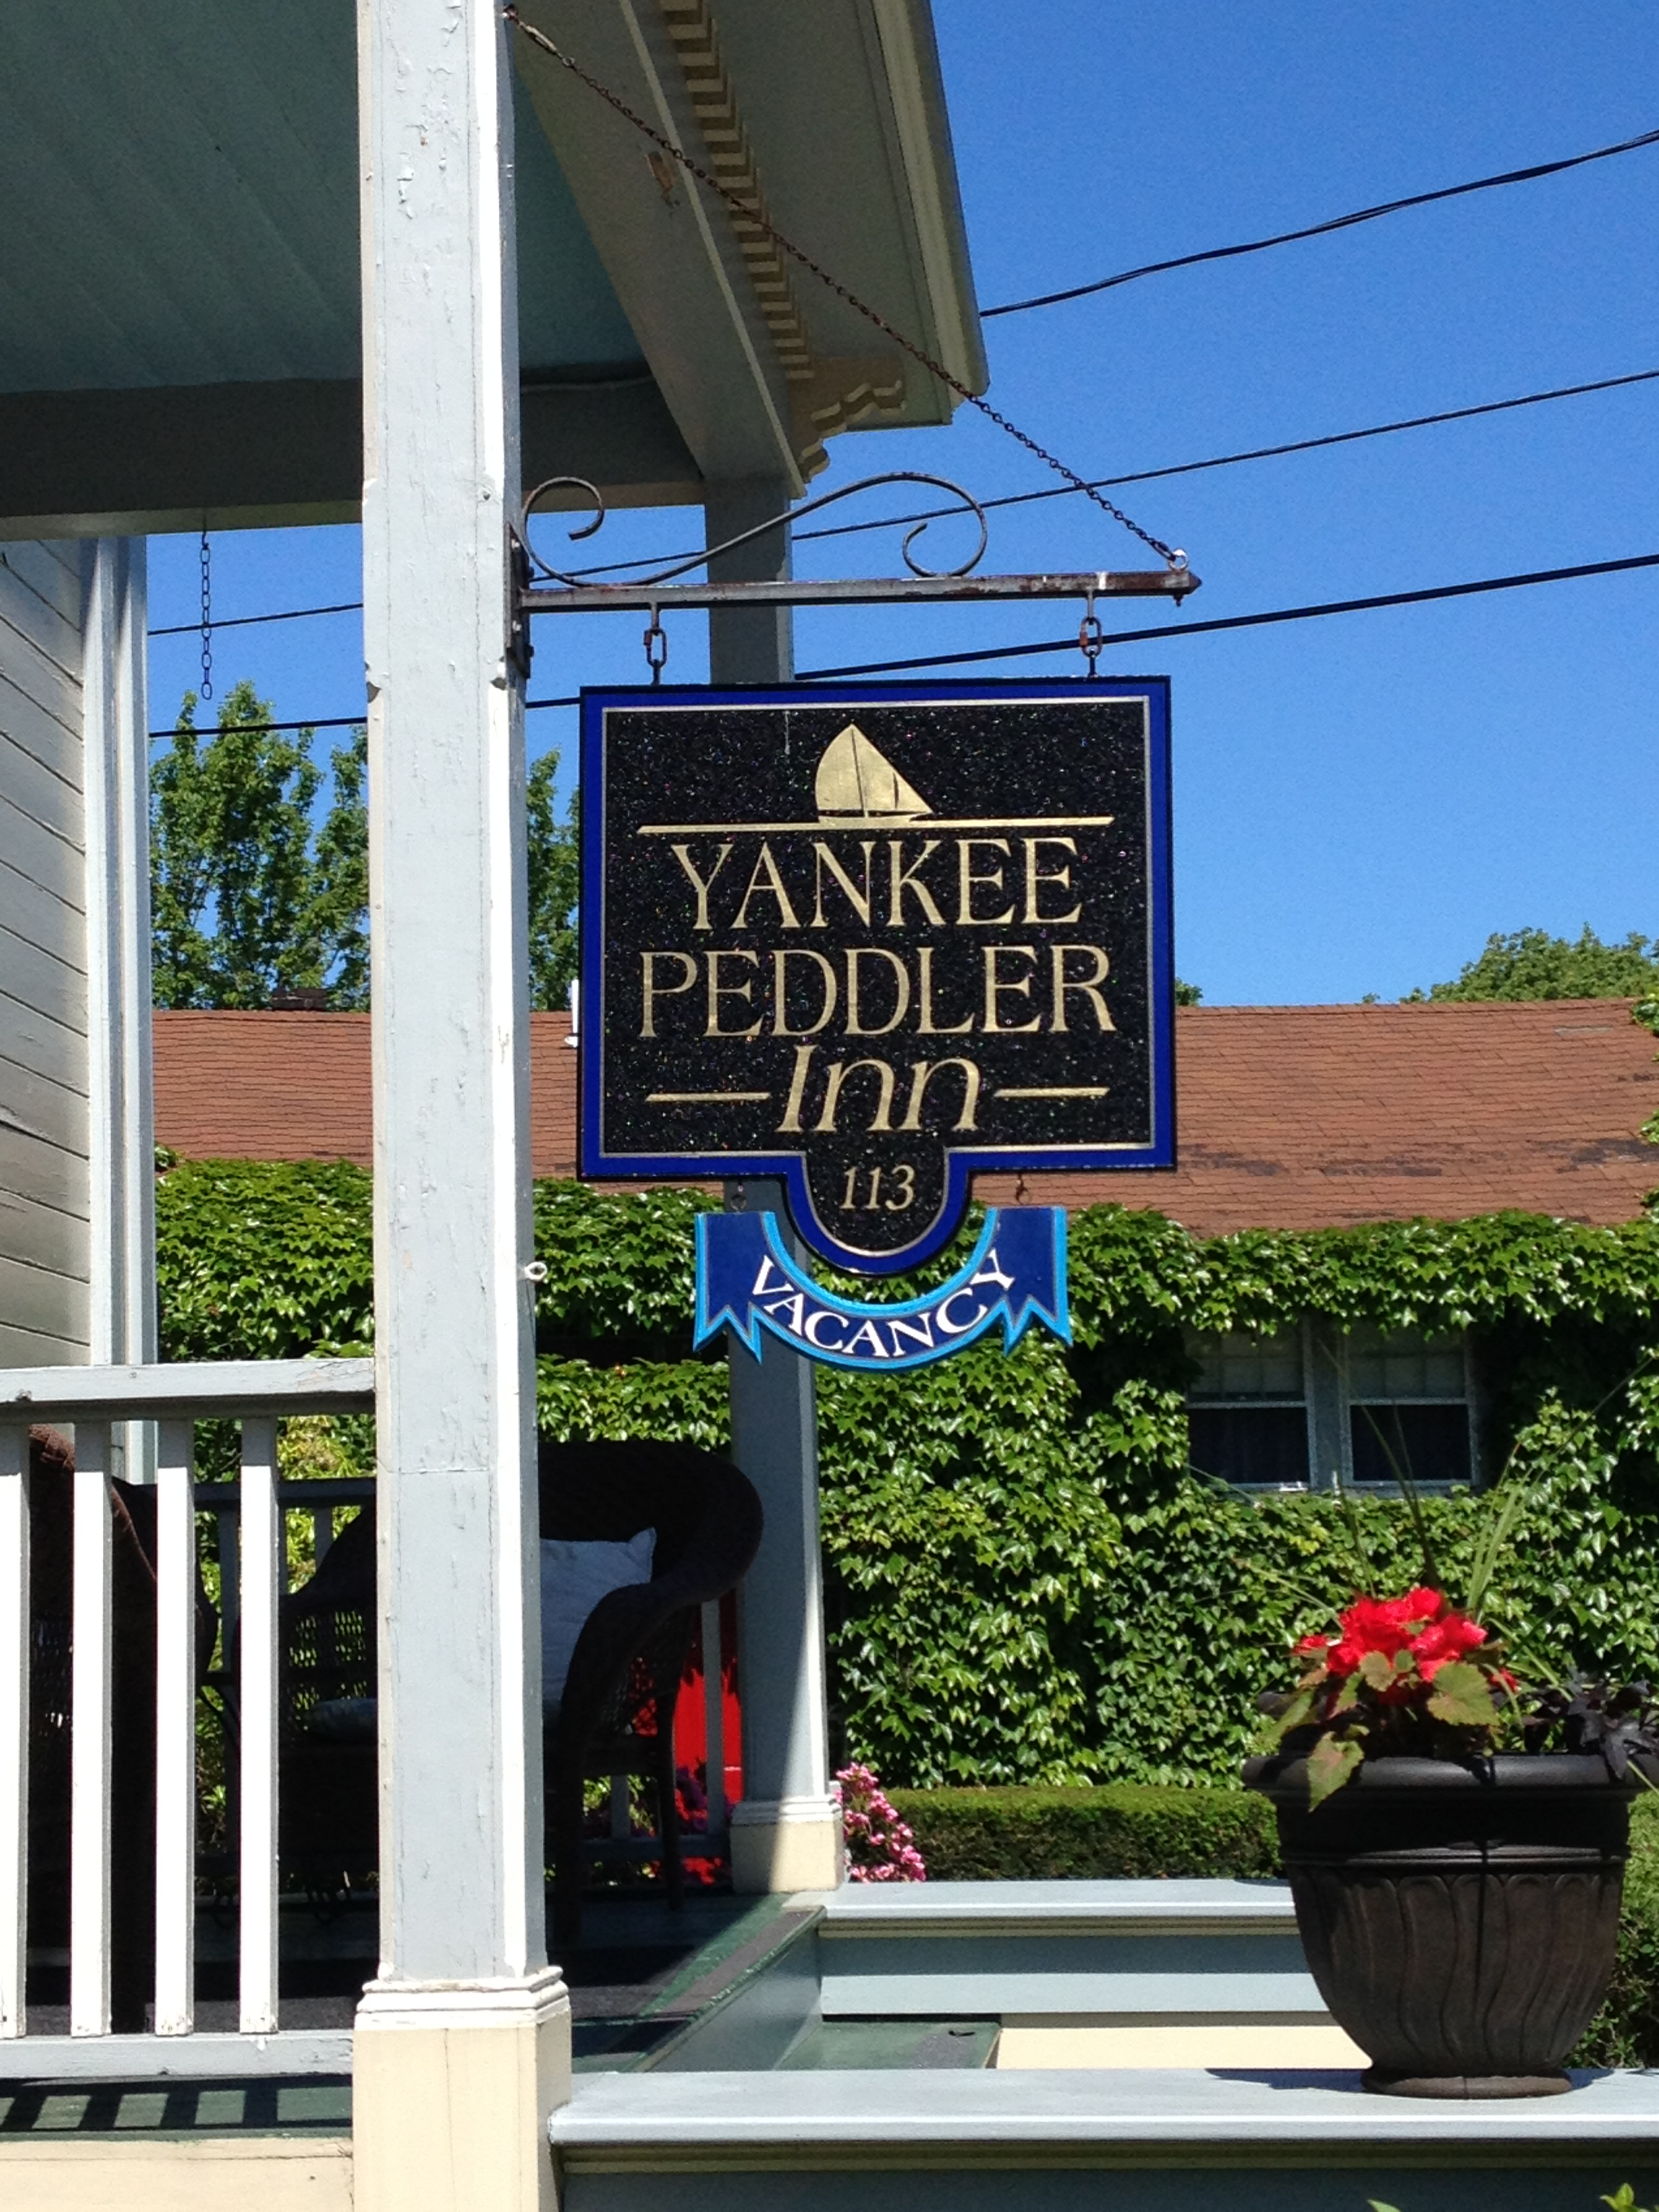 Yankee-Peddler-Inn-sign.jpg